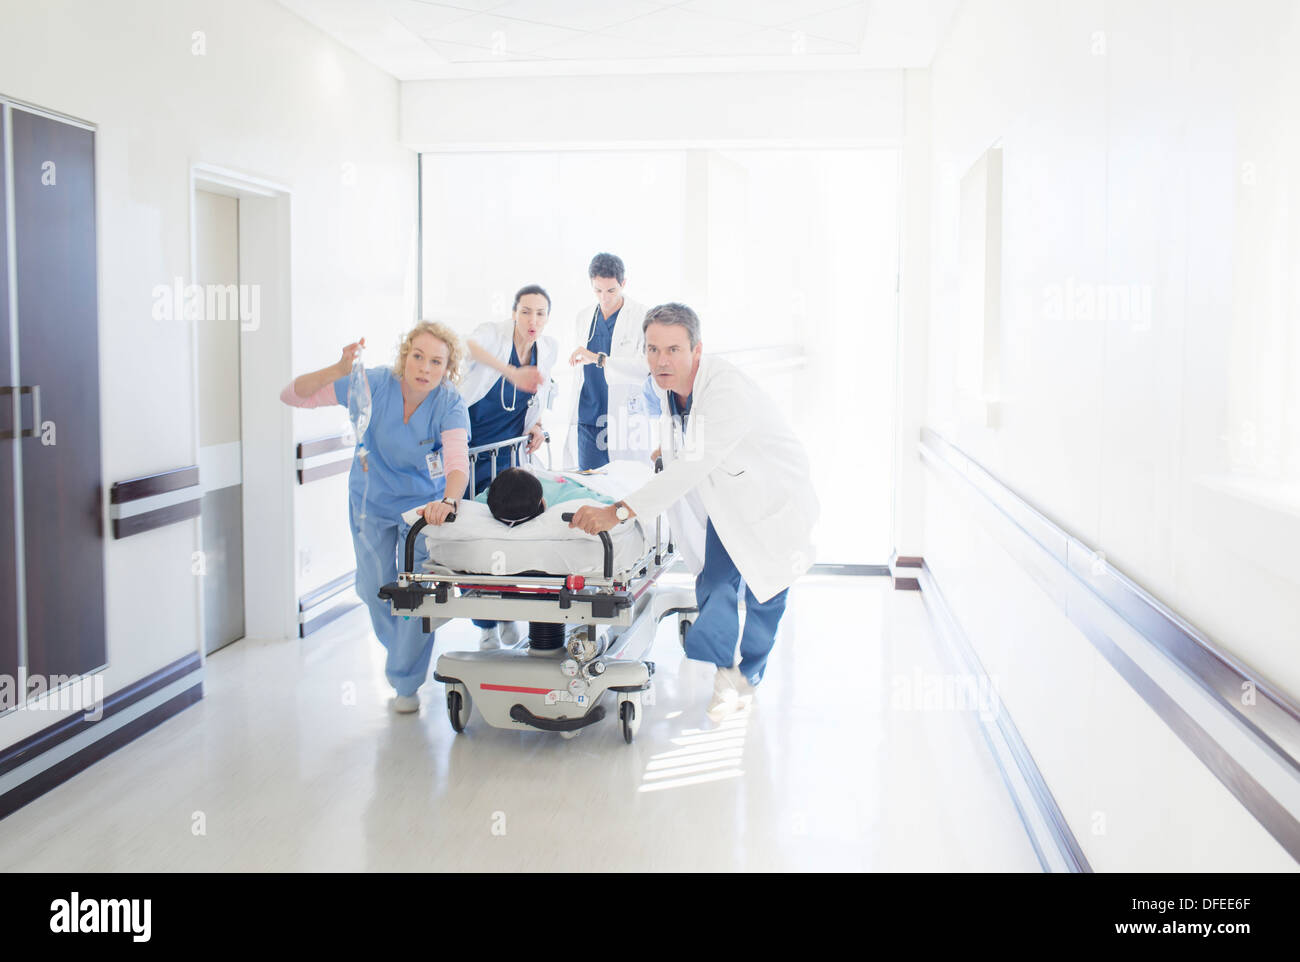 Doctors and nurses rushing patient on stretcher down hospital corridor - Stock Image